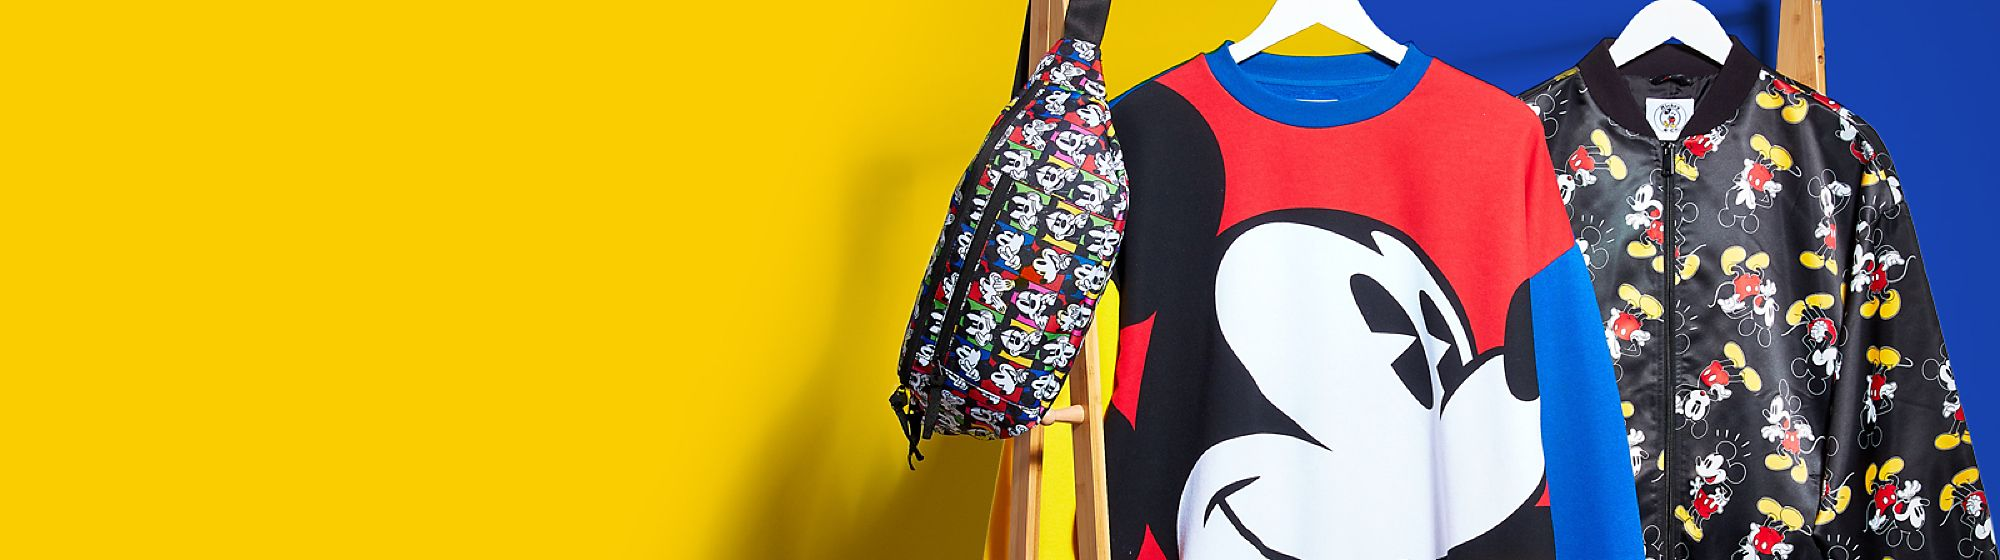 Mickey and Co. A retro Disney apparel brand inspired by 80s and 90s designs, made by using up to 50% of fibers from recycled plastic bottles